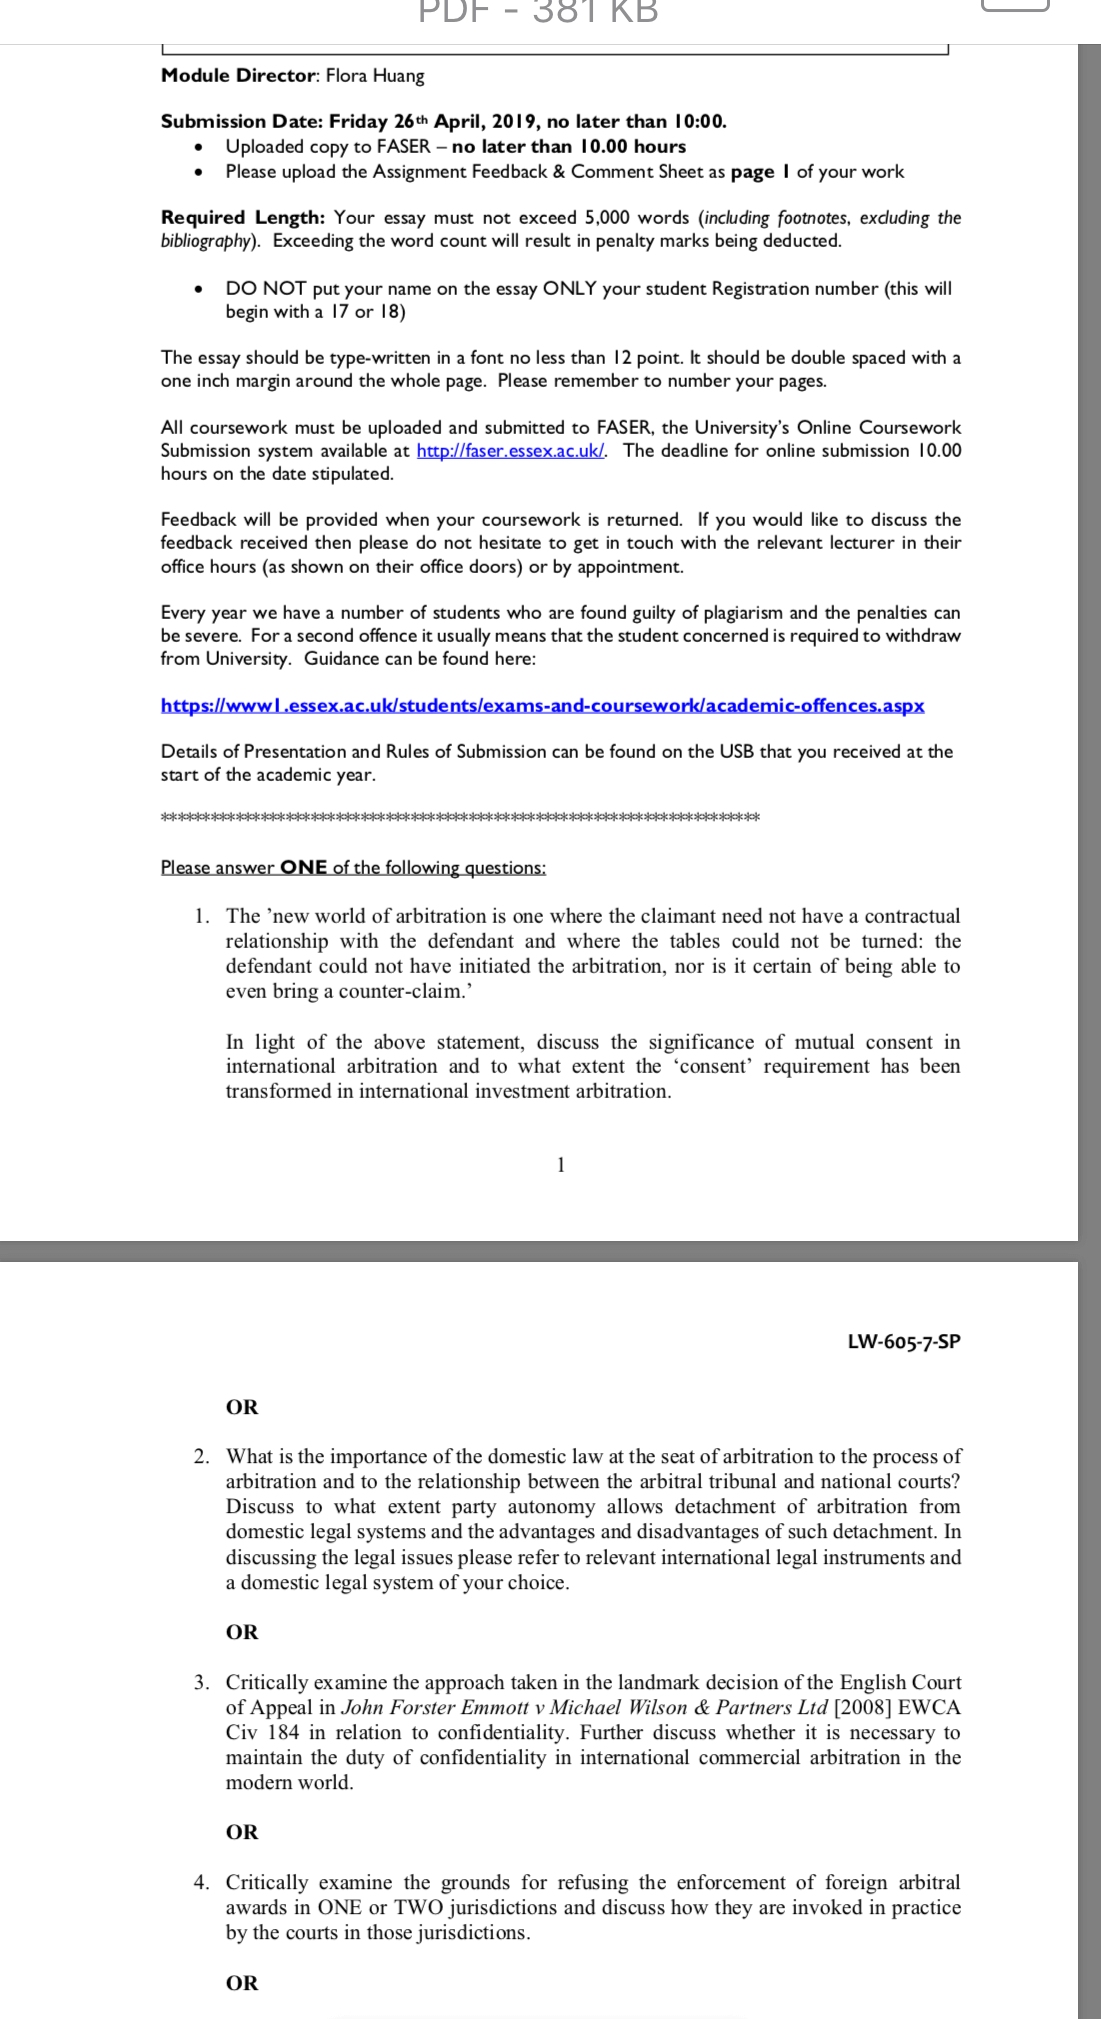 LW6057 - Importance Of Domestic Law - Significance Of Mutual